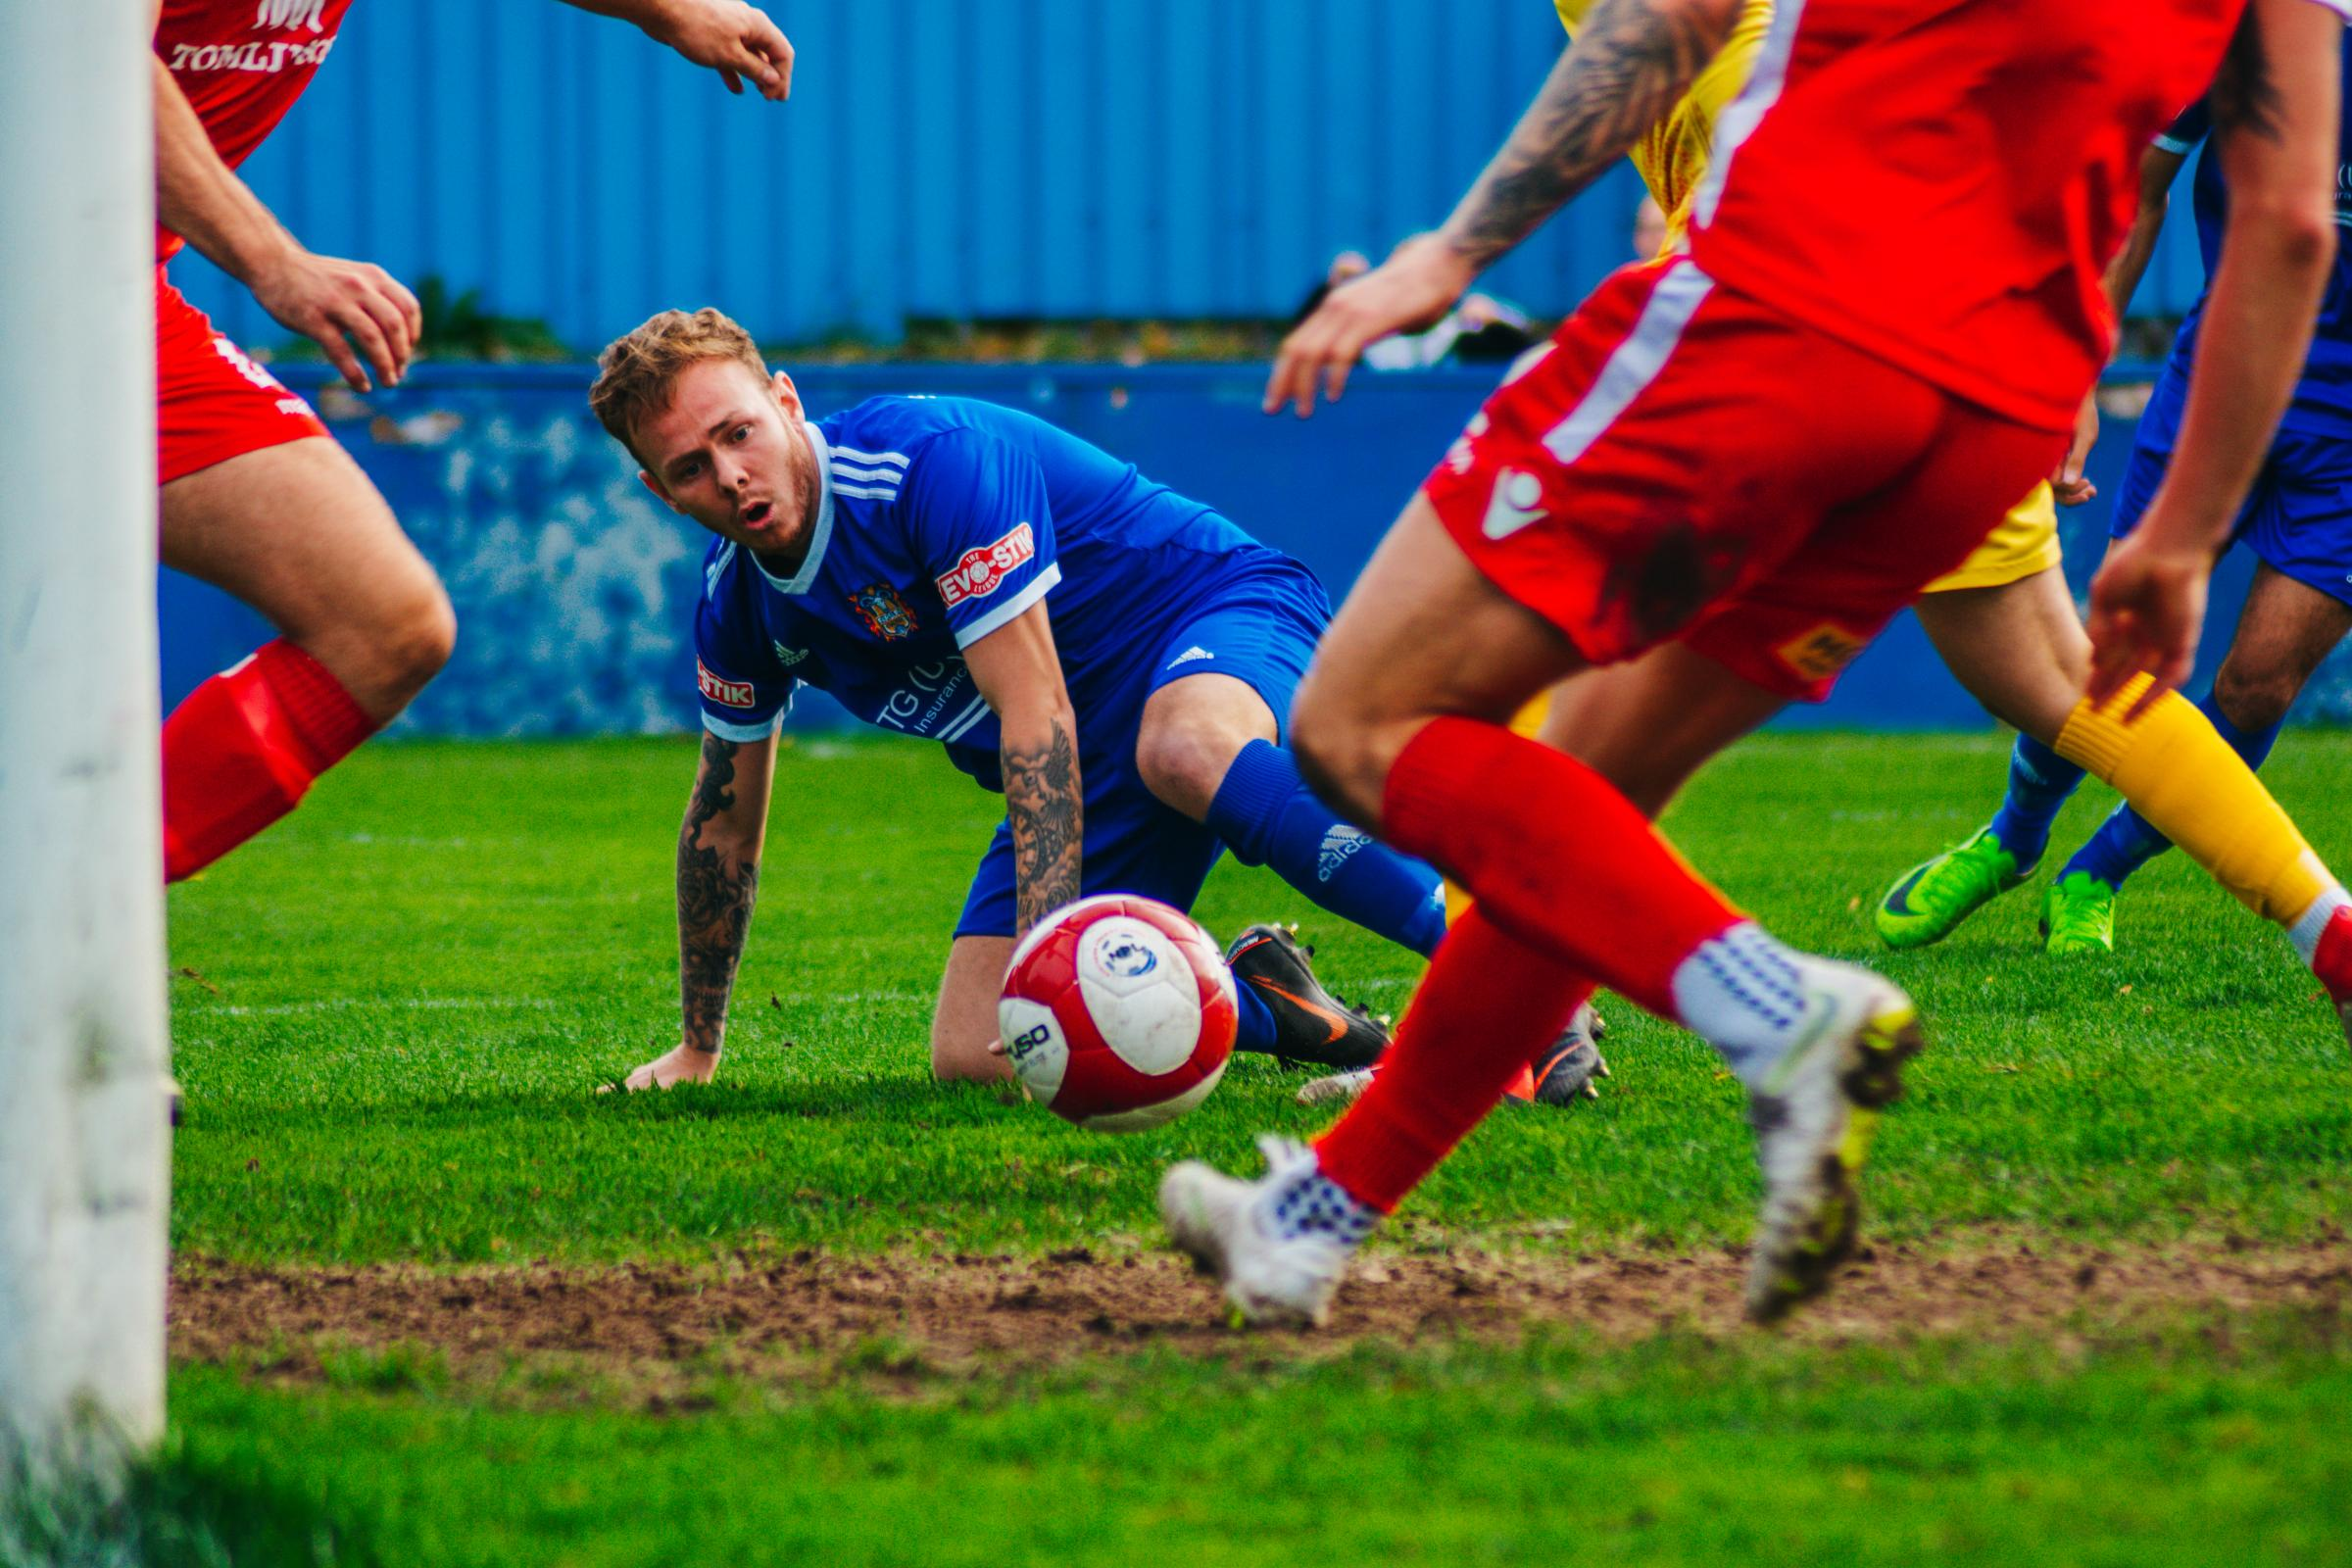 Nathan Cartman grabbed a goal and assist for Farsley Celtic